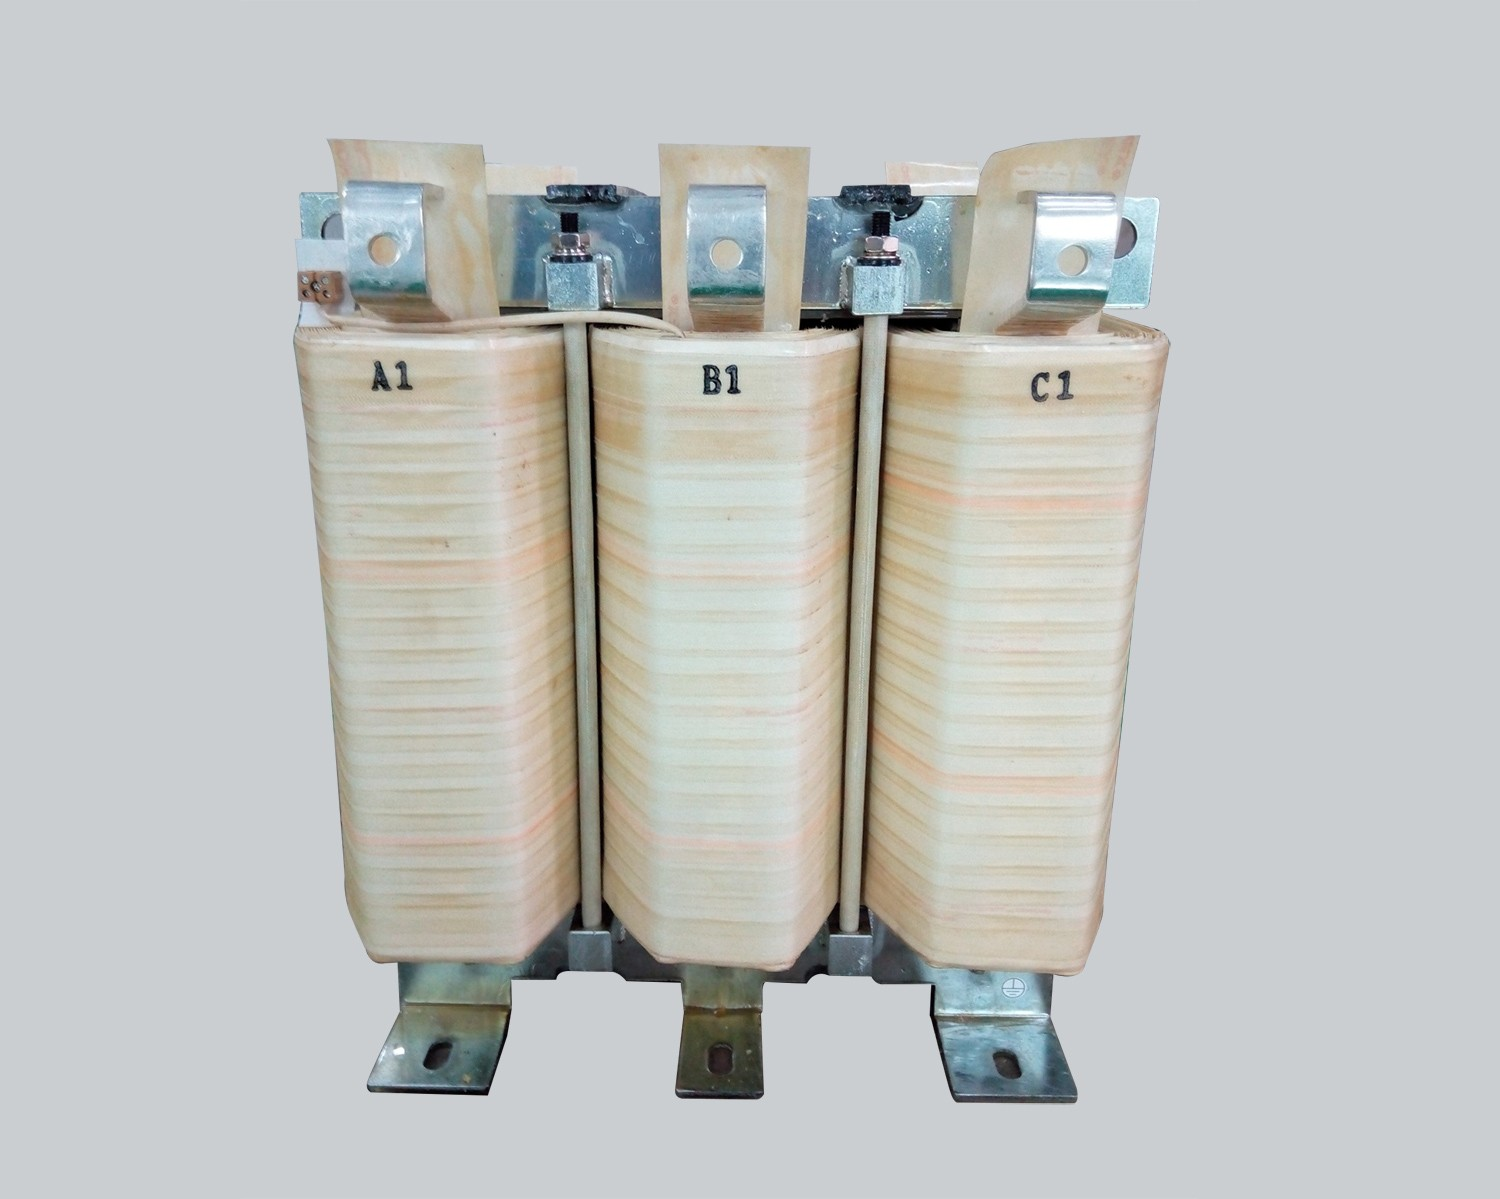 Three-phase filter reactor